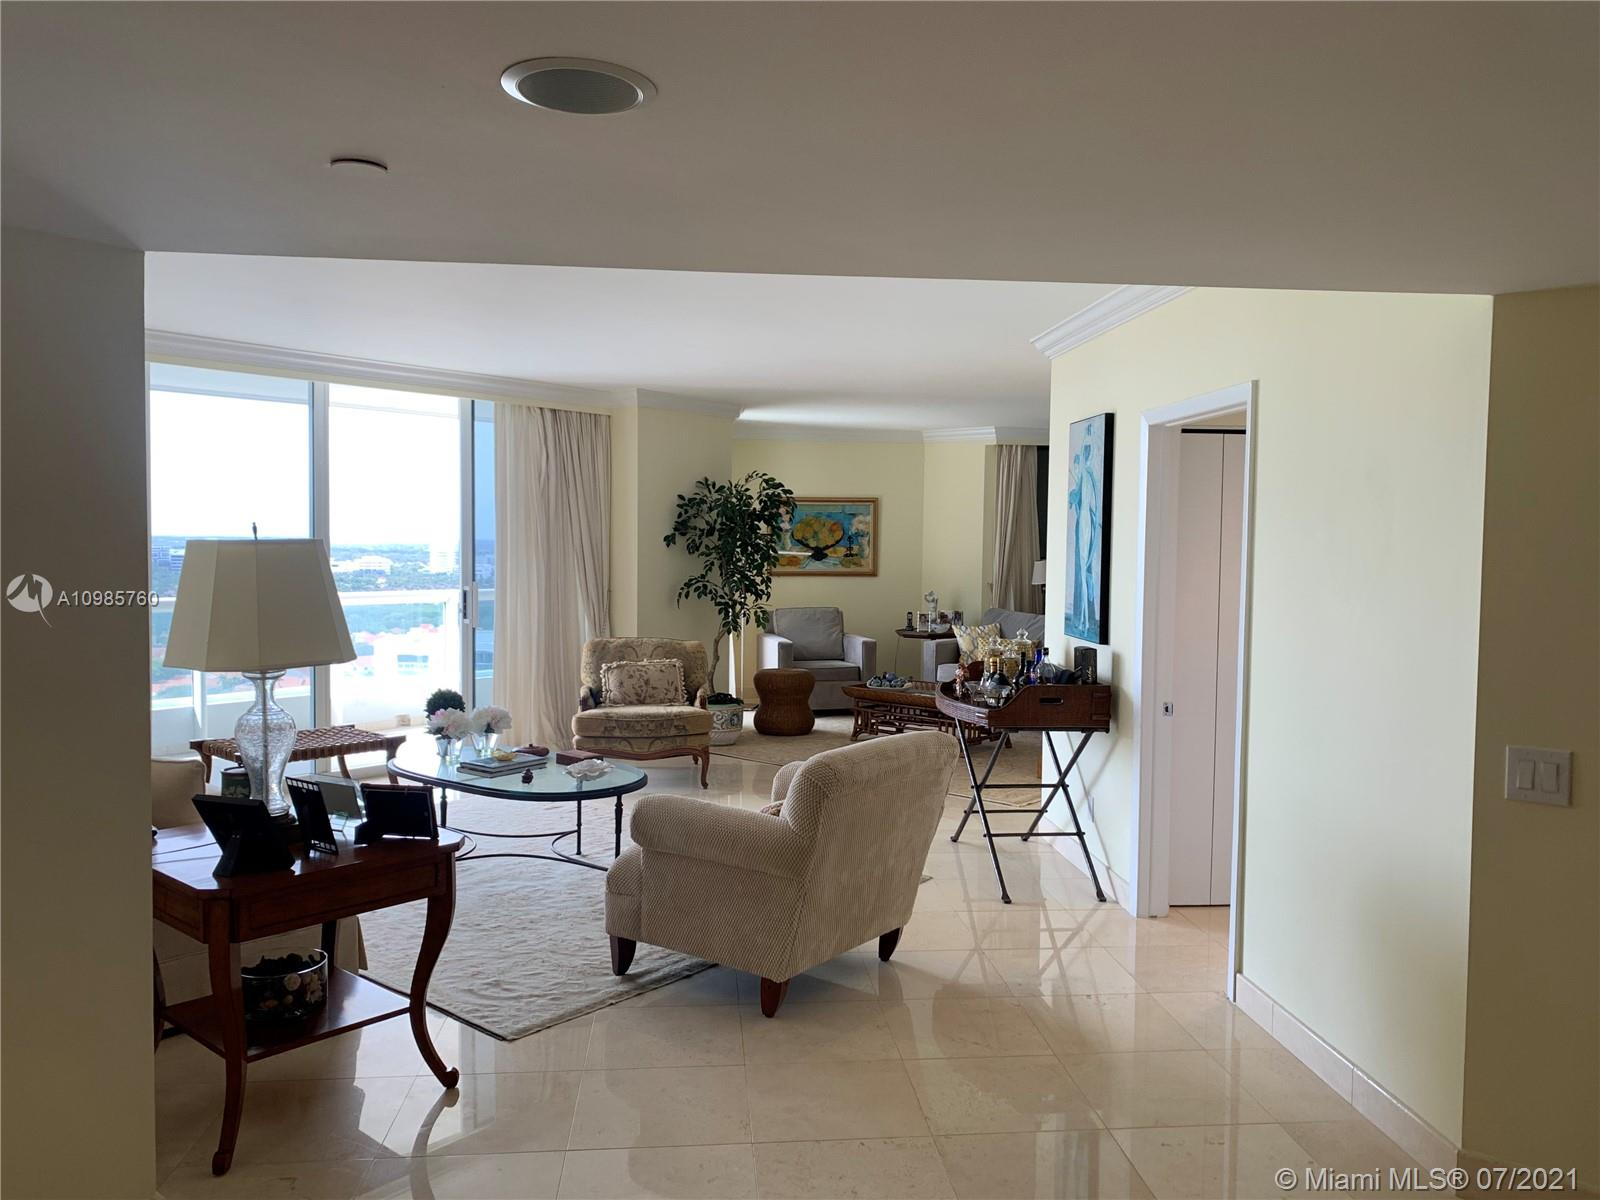 North Tower at the Point #2308 - 21205 YACHT CLUB DR #2308, Aventura, FL 33180